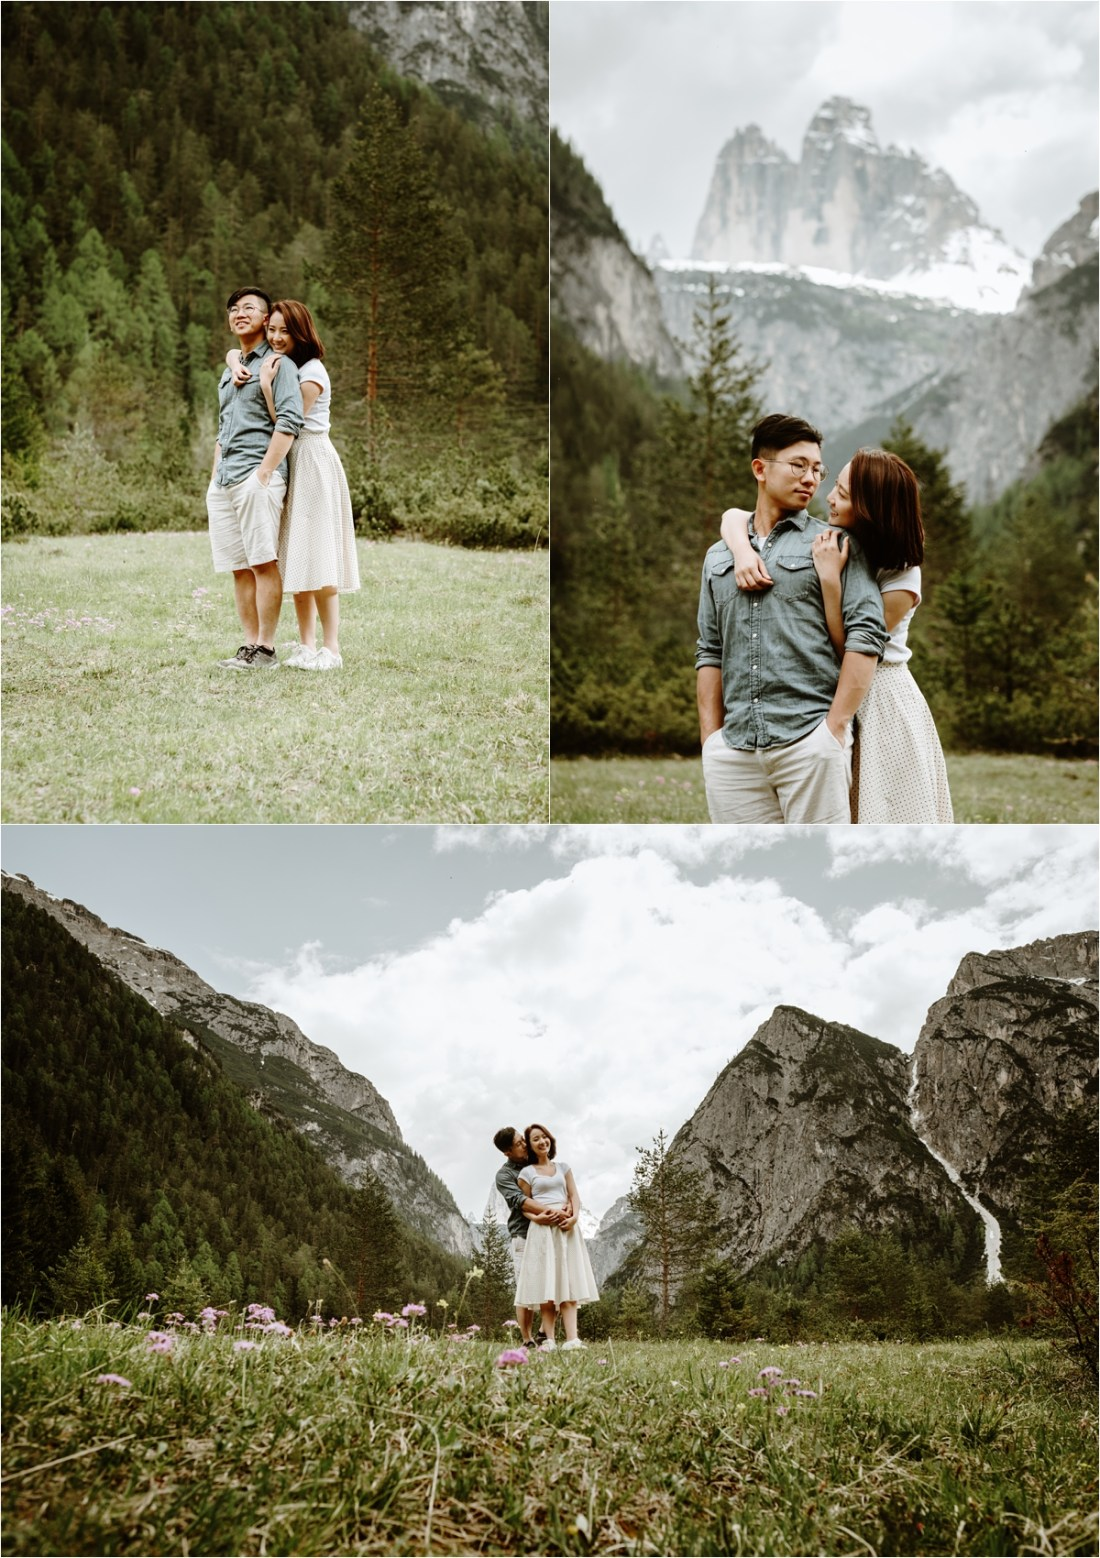 Engagement shoot of a Chinese couple in a mountain meadow in the Dolomites. Photo by Wild Connections Photography